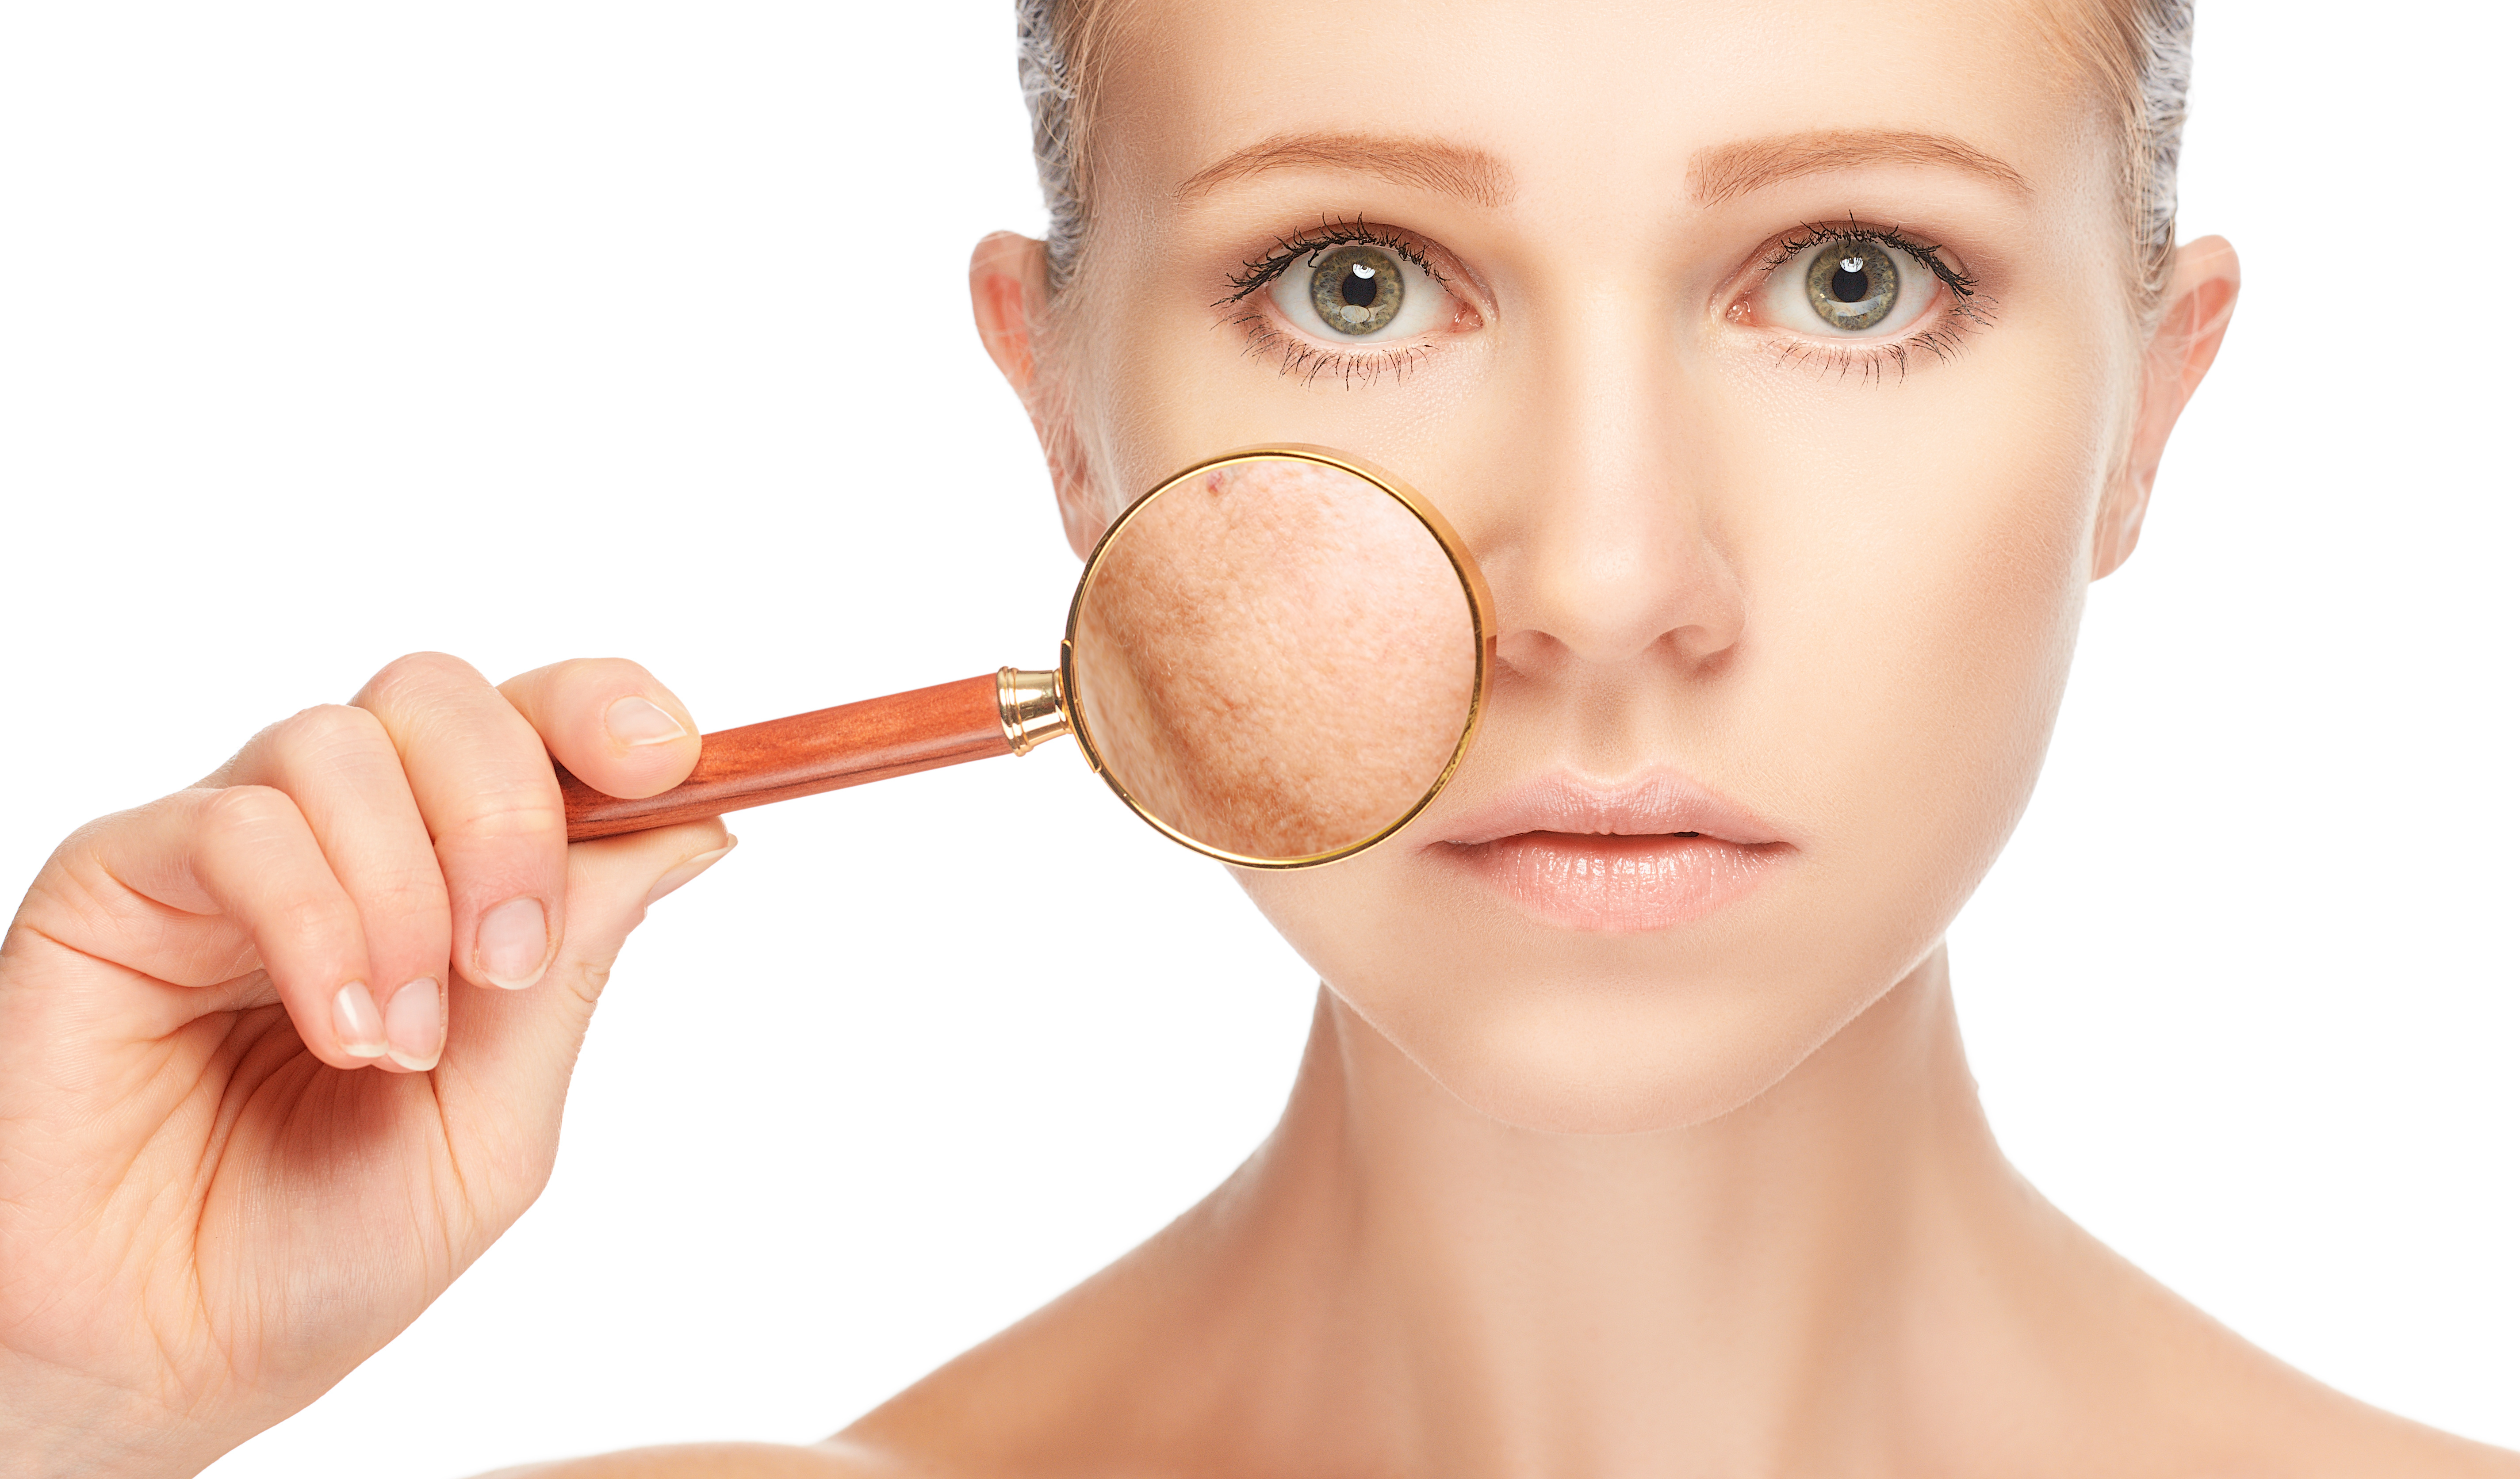 concept skincare. Skin of beauty young woman with magnifier before and after the procedure on a white background